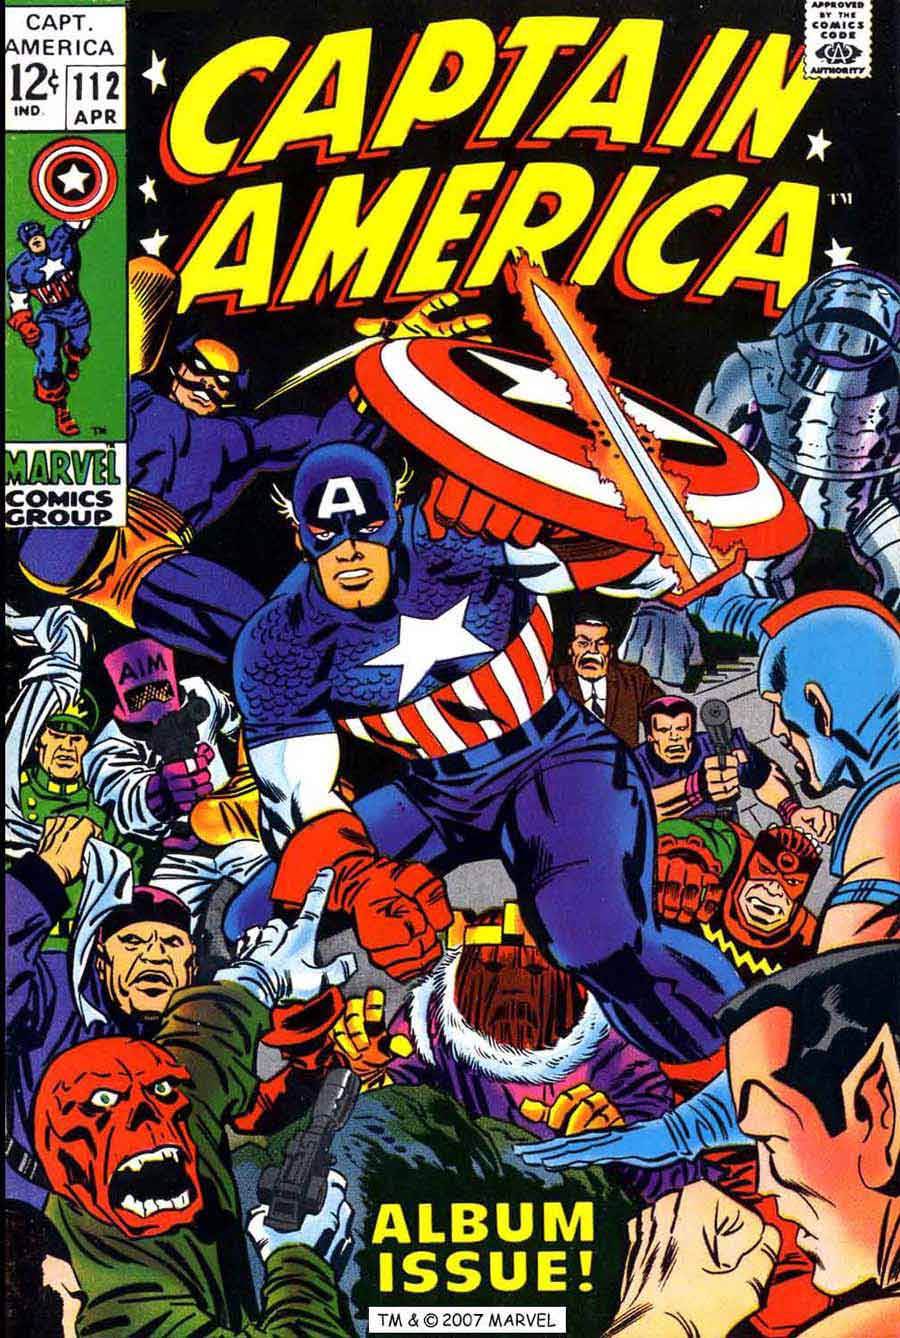 Captain America v1 #112 marvel comic book cover art by Jack Kirby